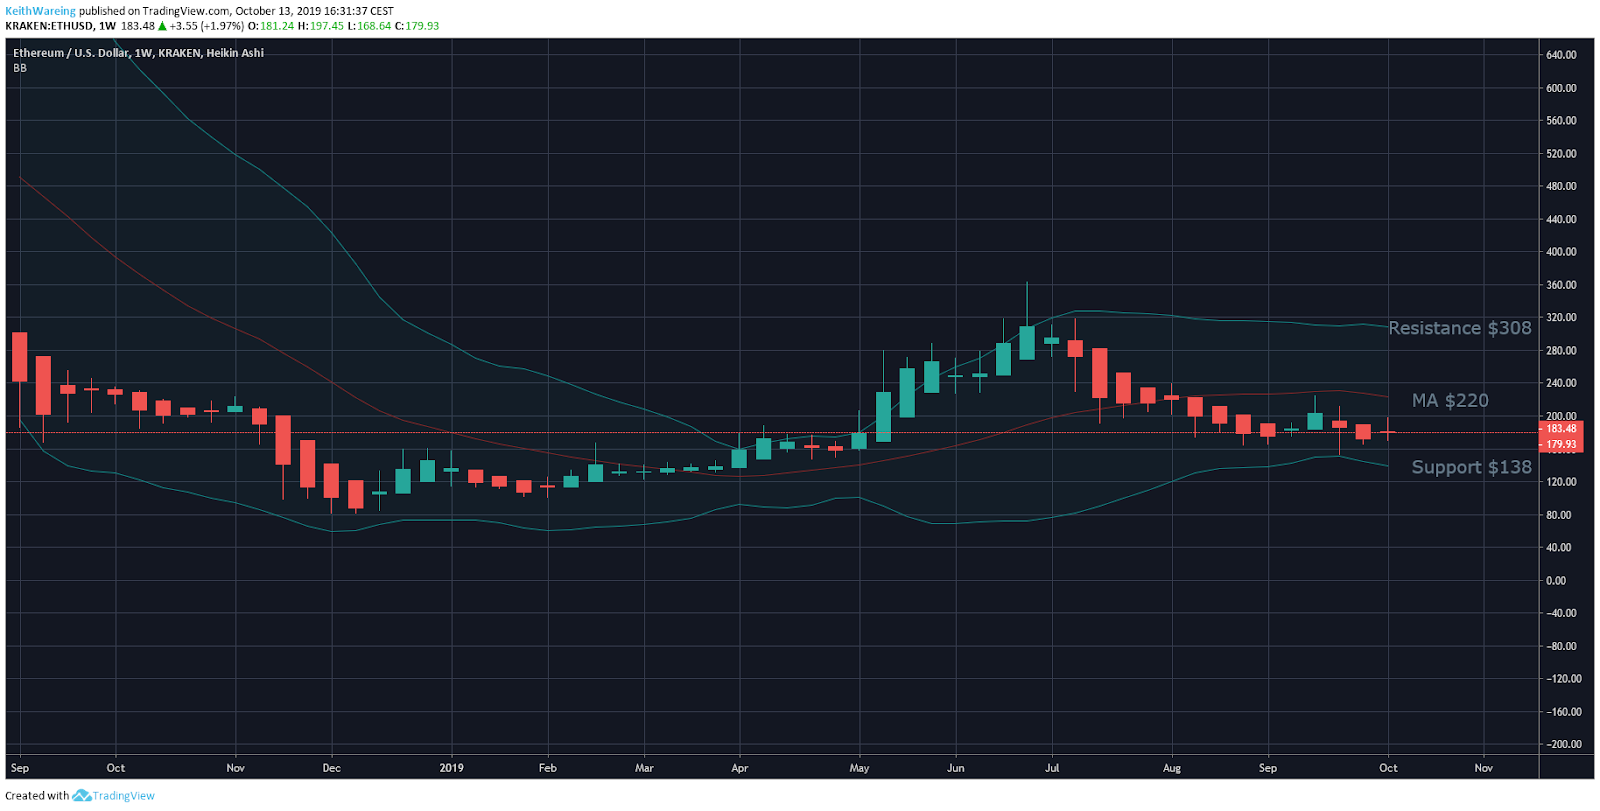 ETH/USD 1-week chart